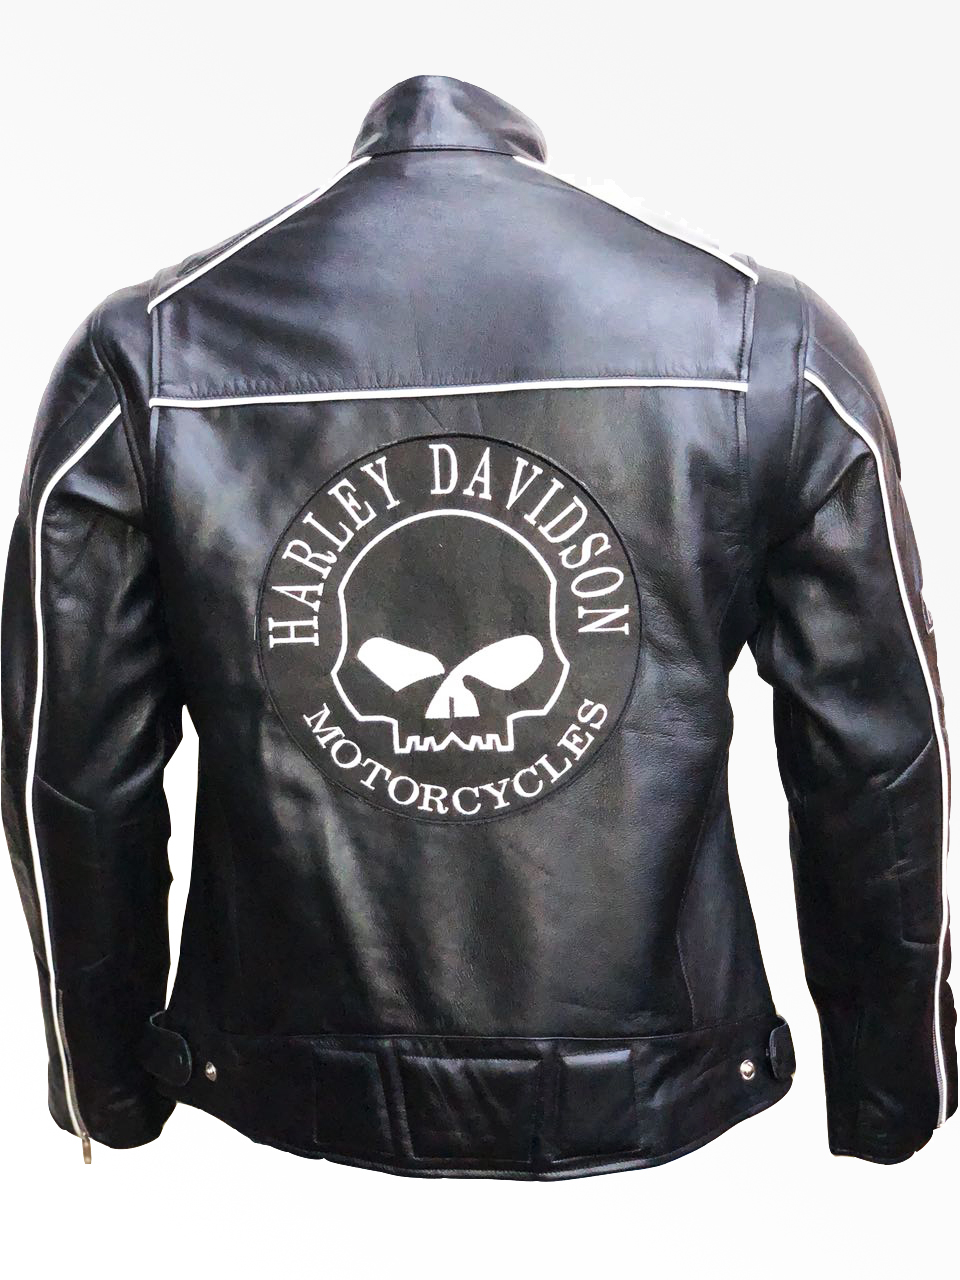 New Harley Davidson Leather (1)